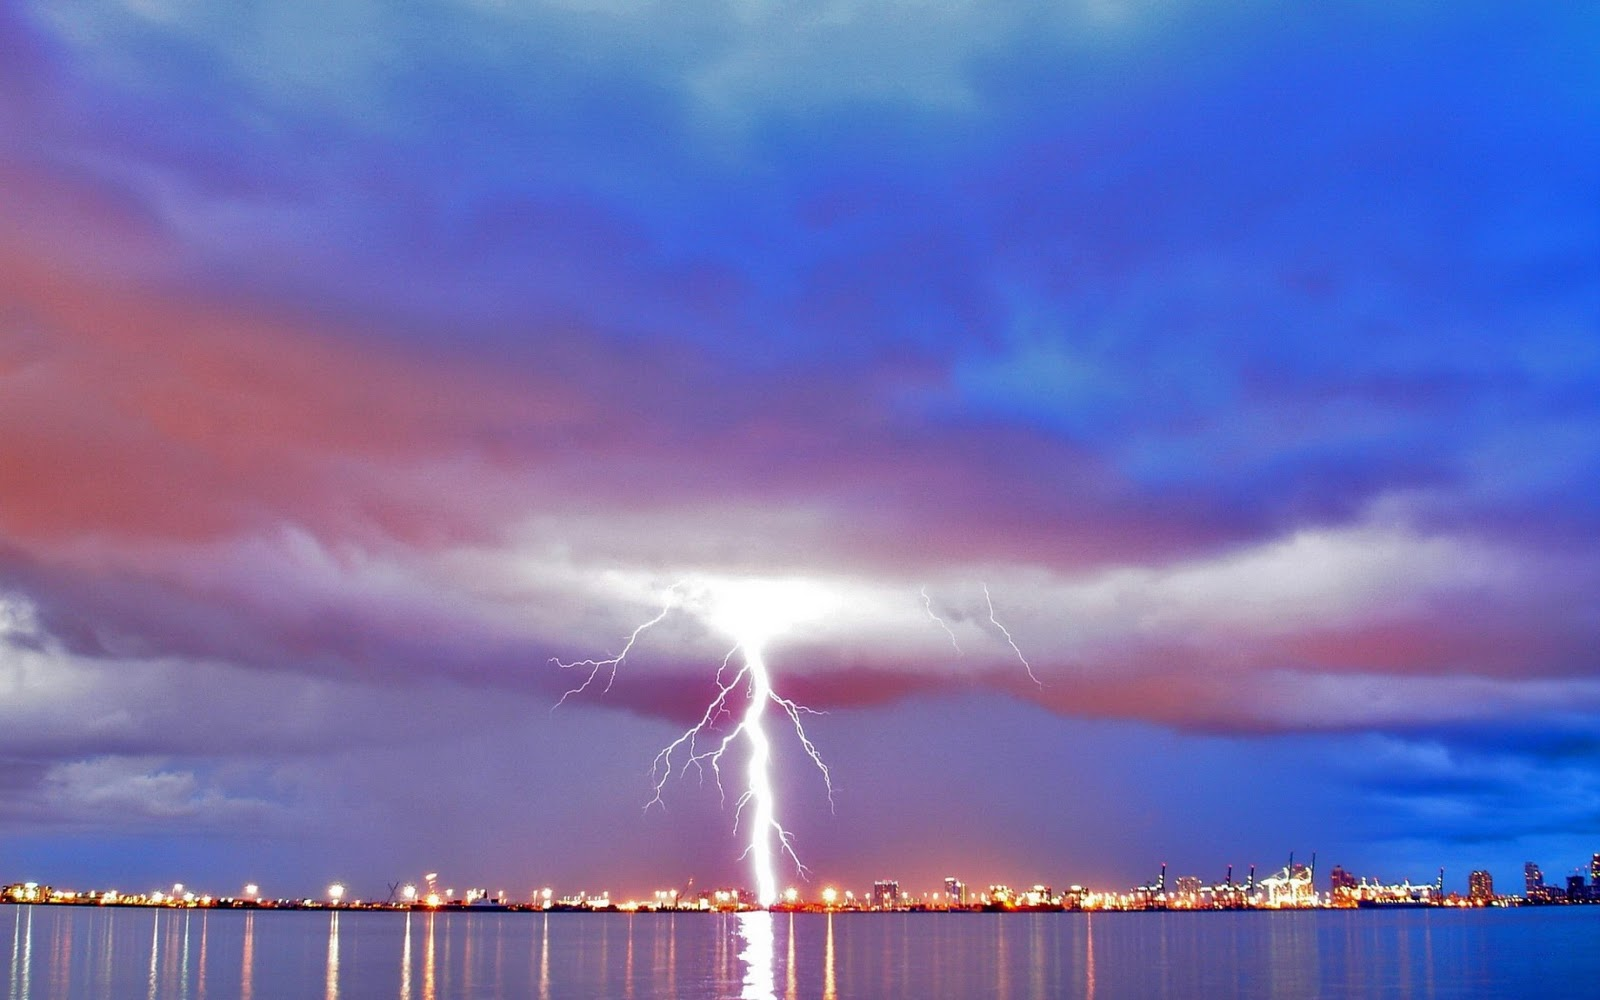 Onweer Achtergronden | HD Wallpapers Wallpapers Bureaublad